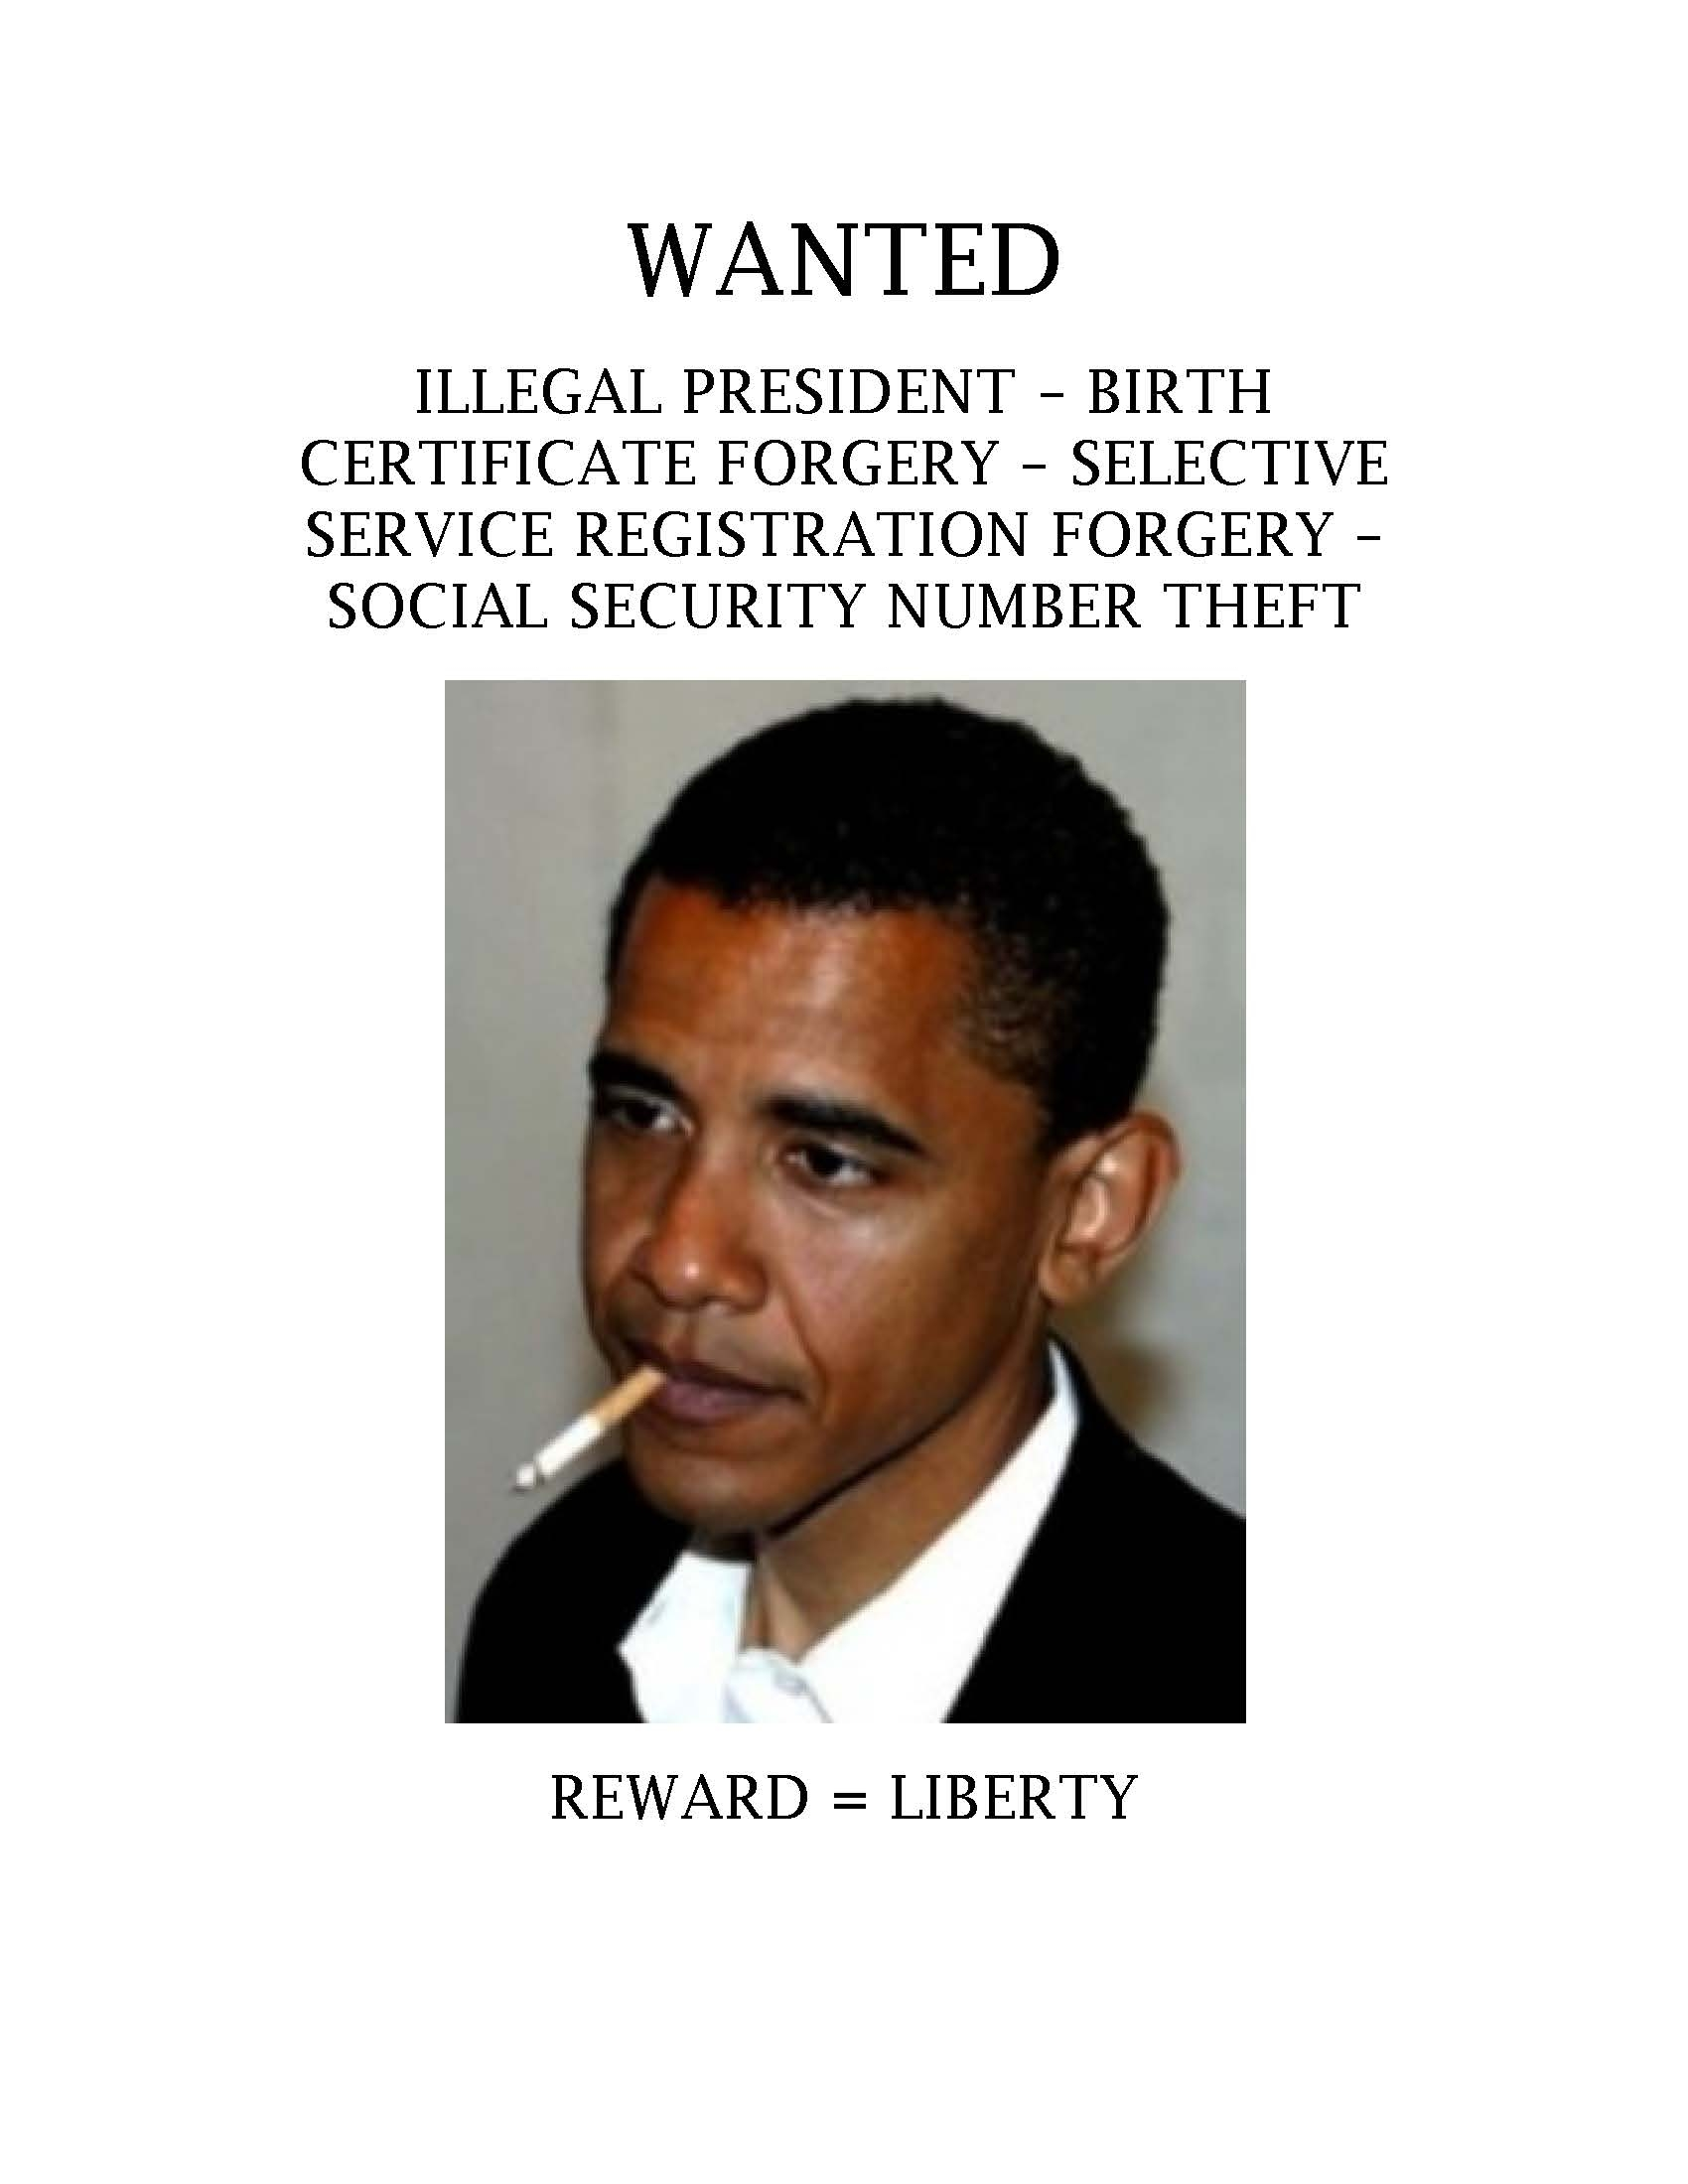 Obamma Wanted Poster